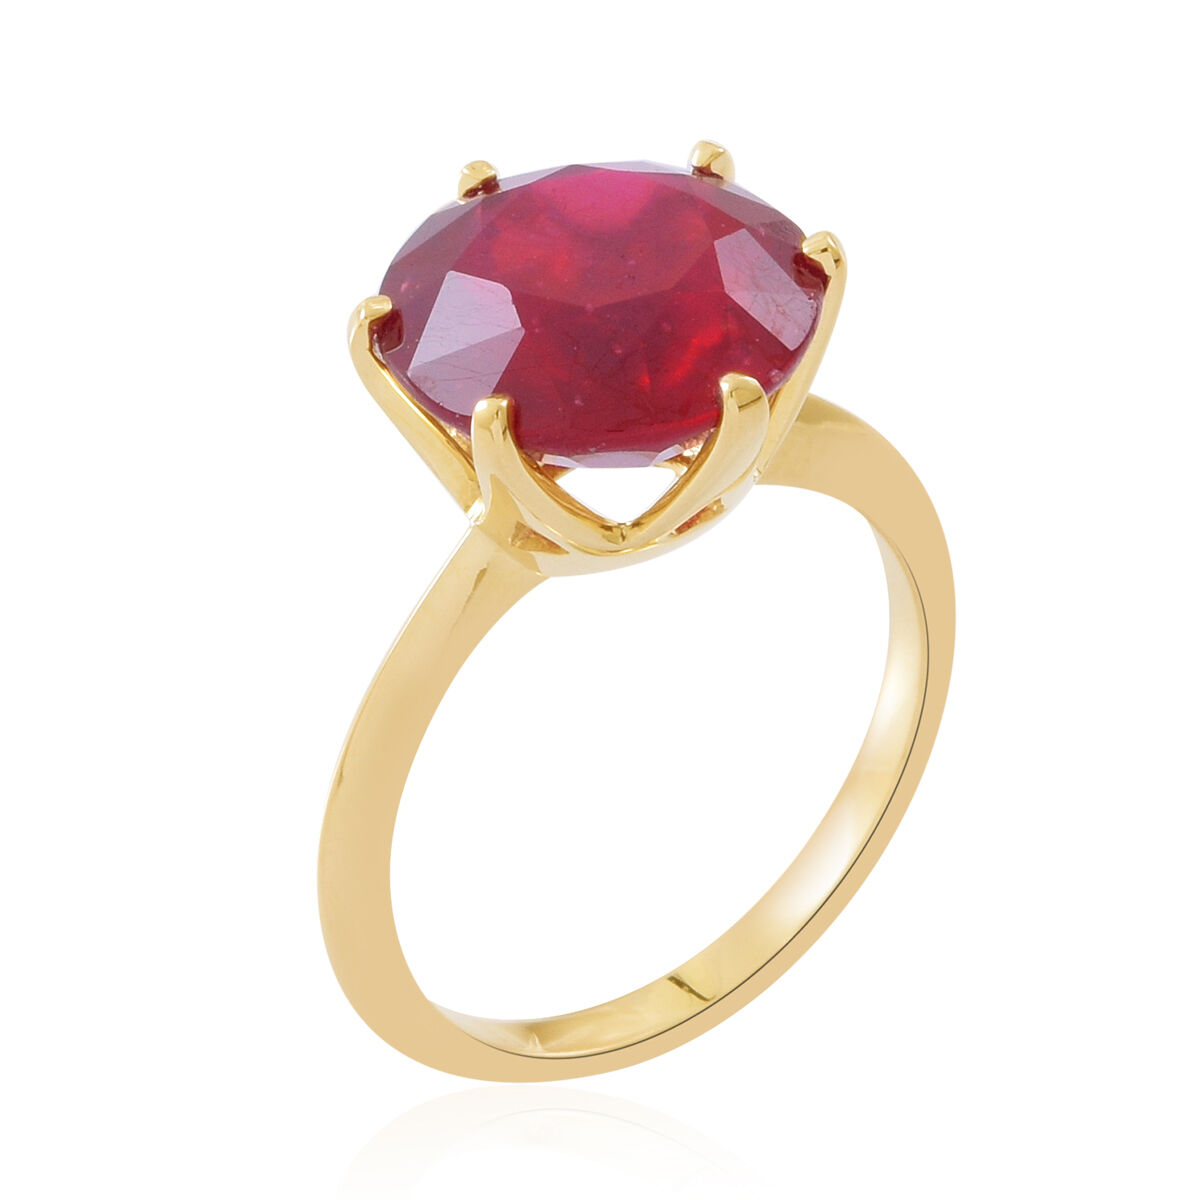 9K Yellow Gold AAA Rare Size Ruby Solitaire Ring 8.5 Ct eLbfr7